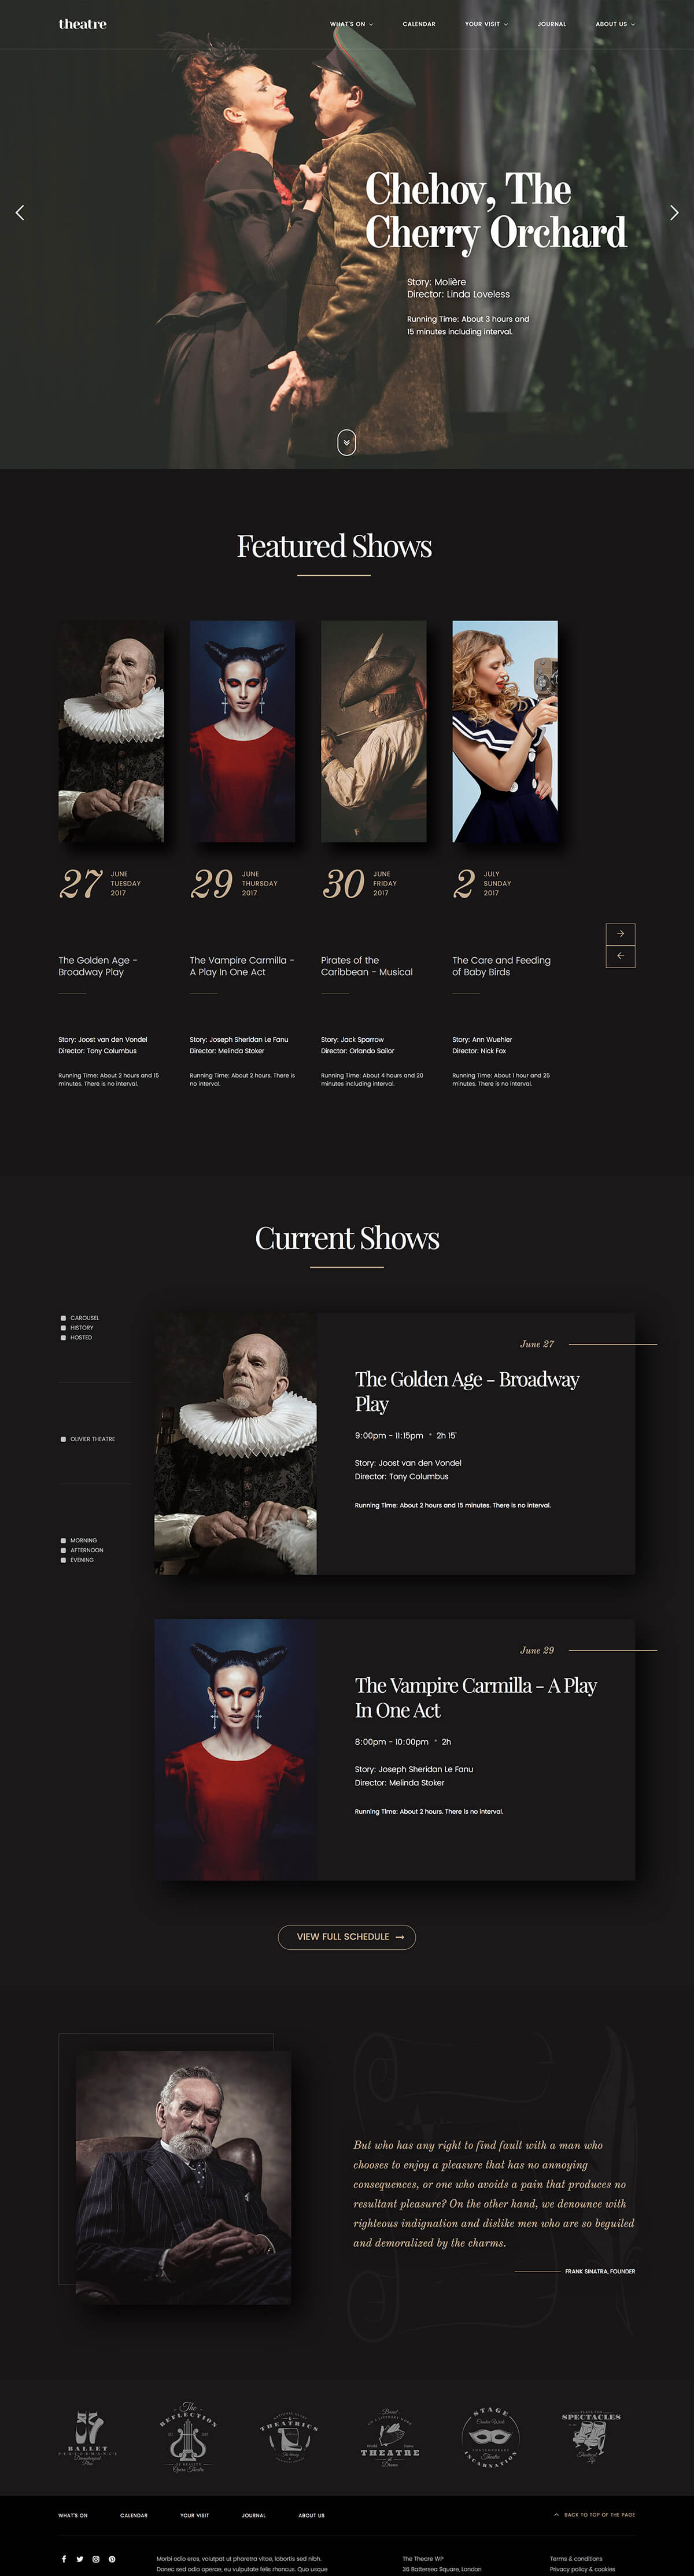 Theatre WordPress Theme - Homepage